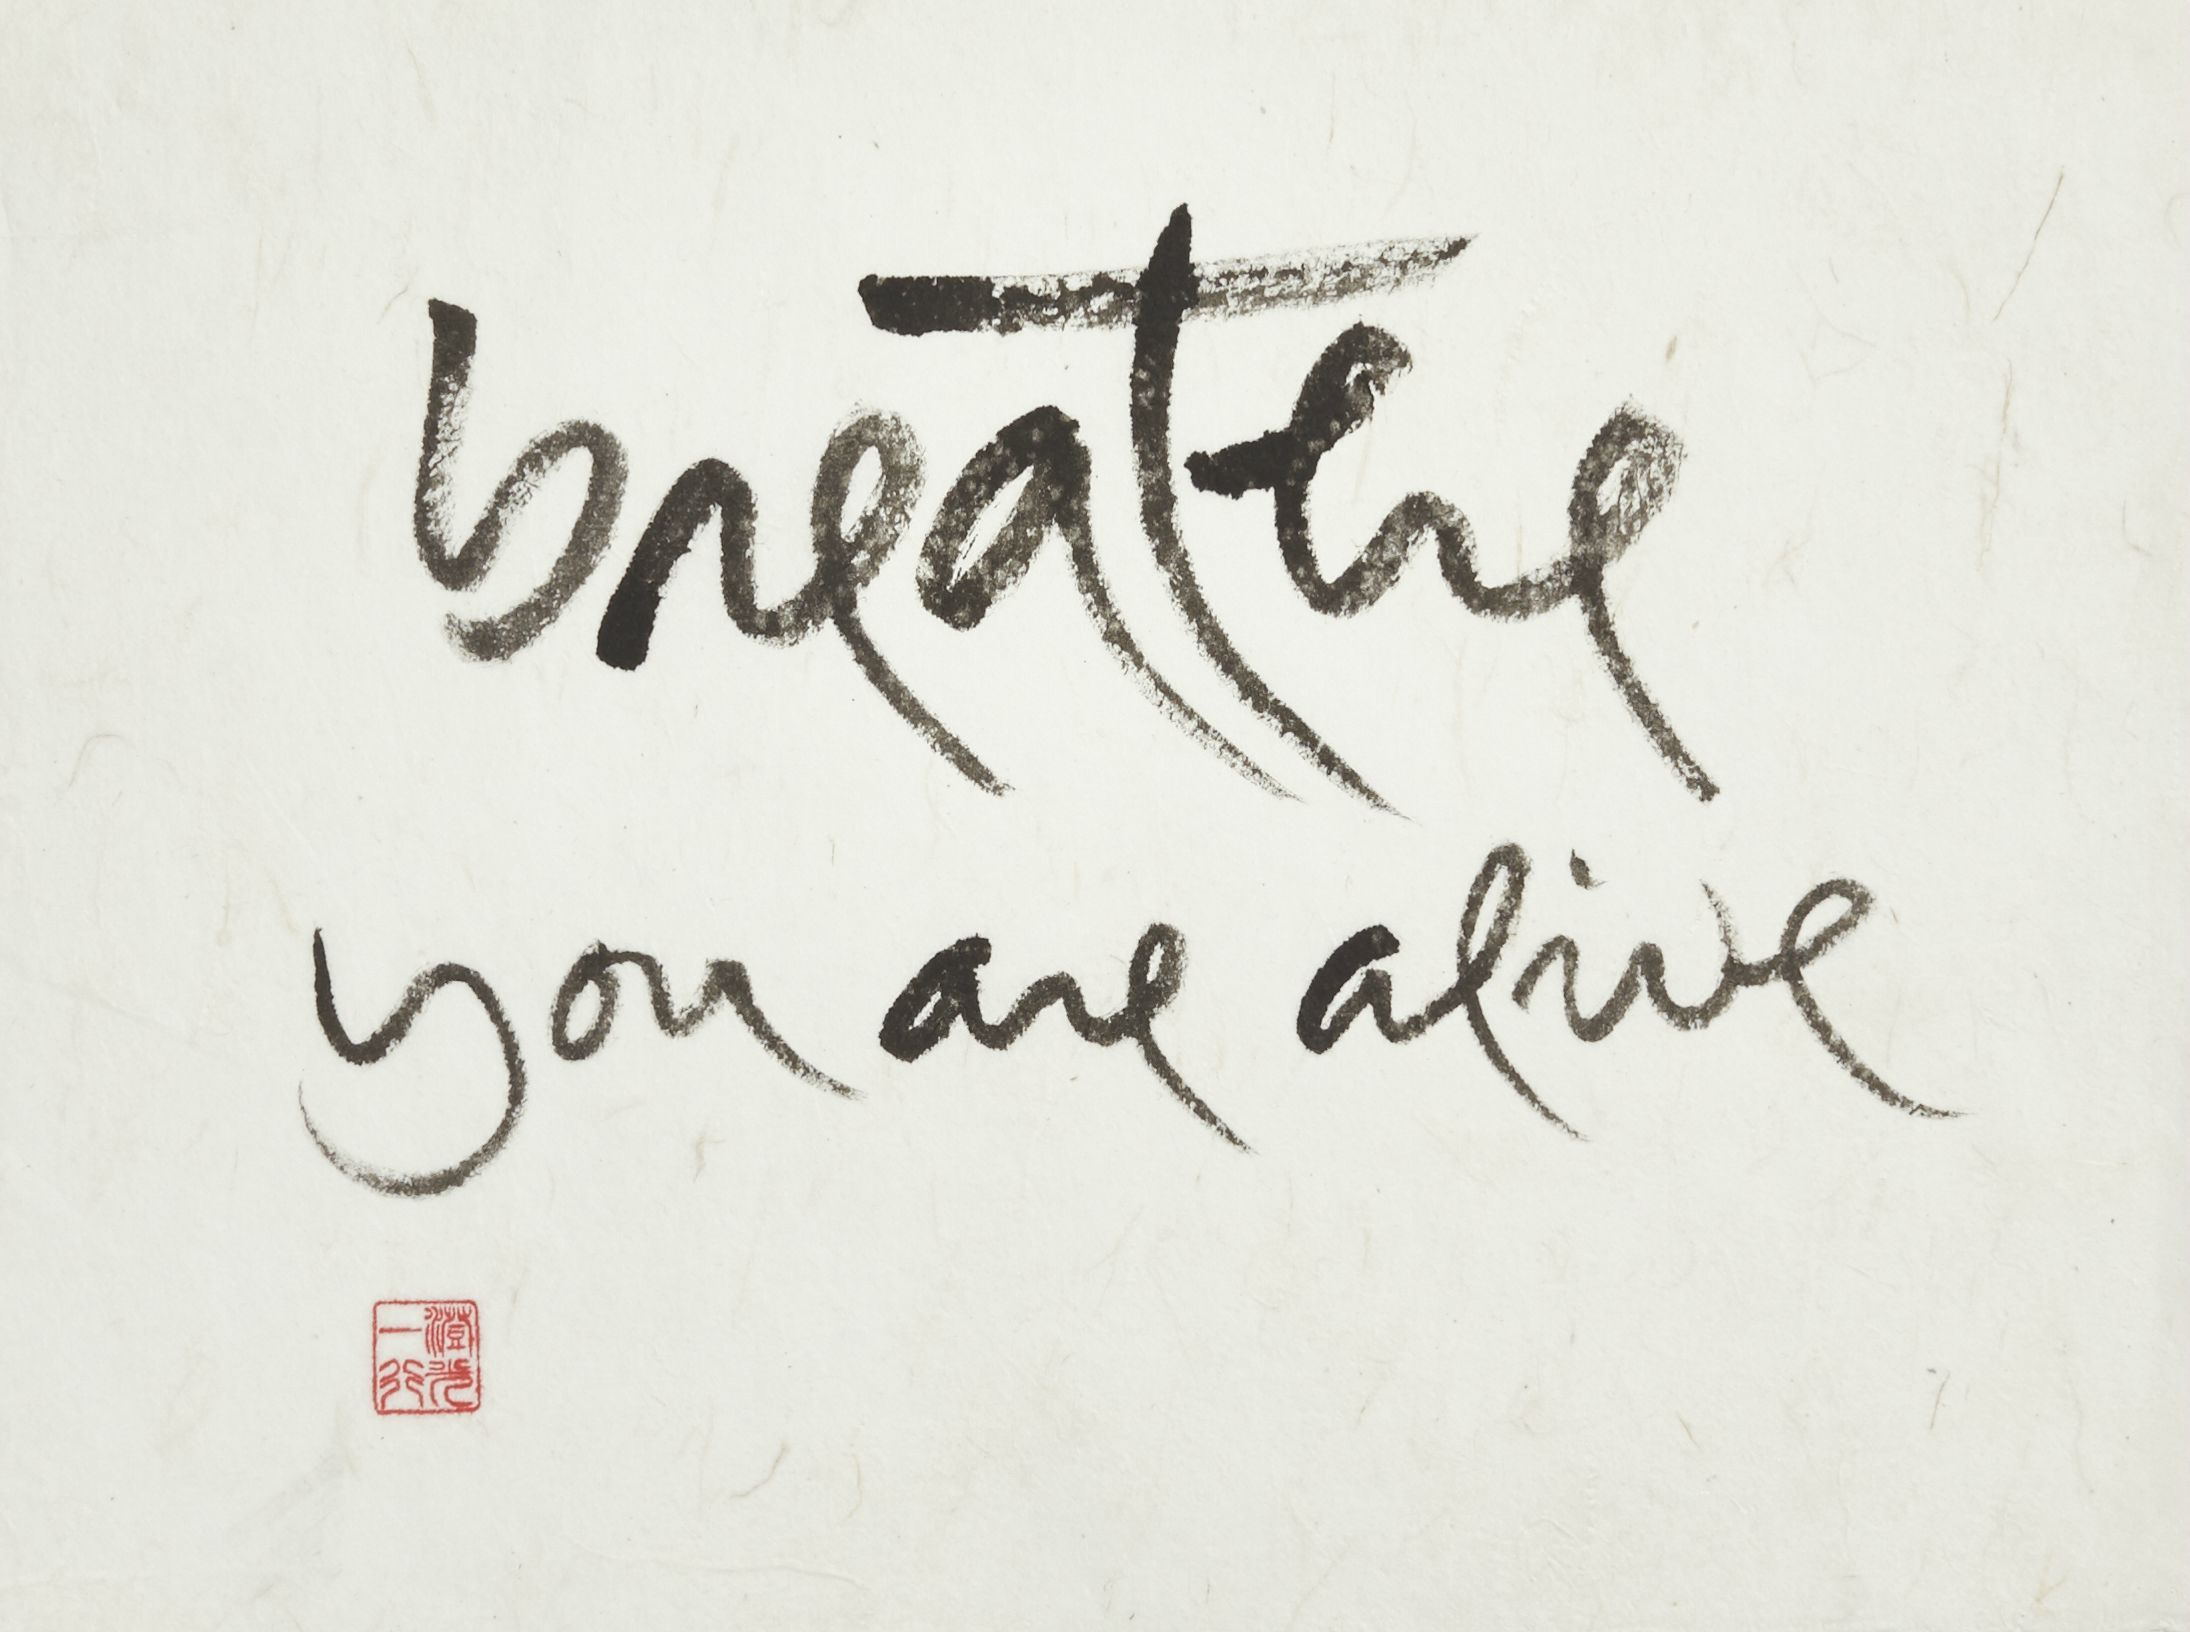 Breathe, you are alive - Thich Nhat Hanh♡*¨)¸.·´¸.·*´¨) ¸.·*